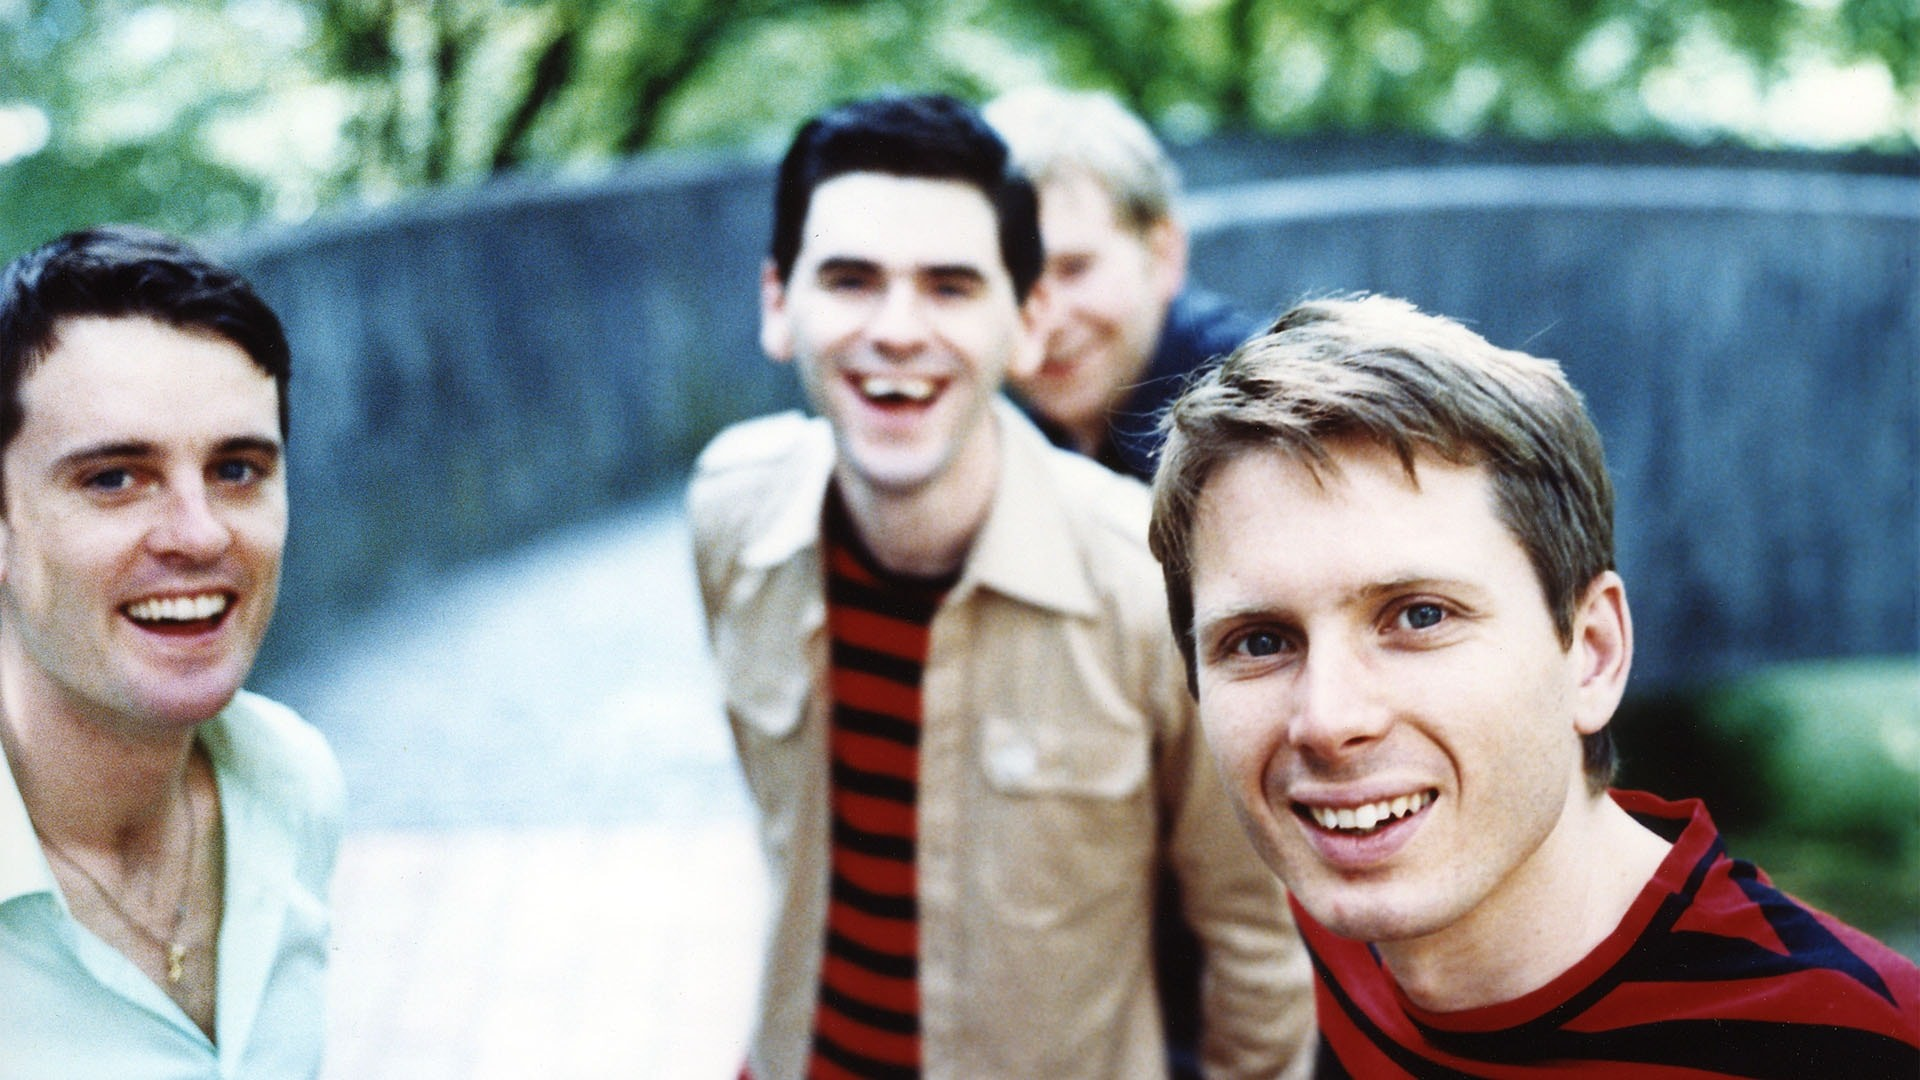 Franz Ferdinand Backgrounds Franz Ferdinand Wallpaper